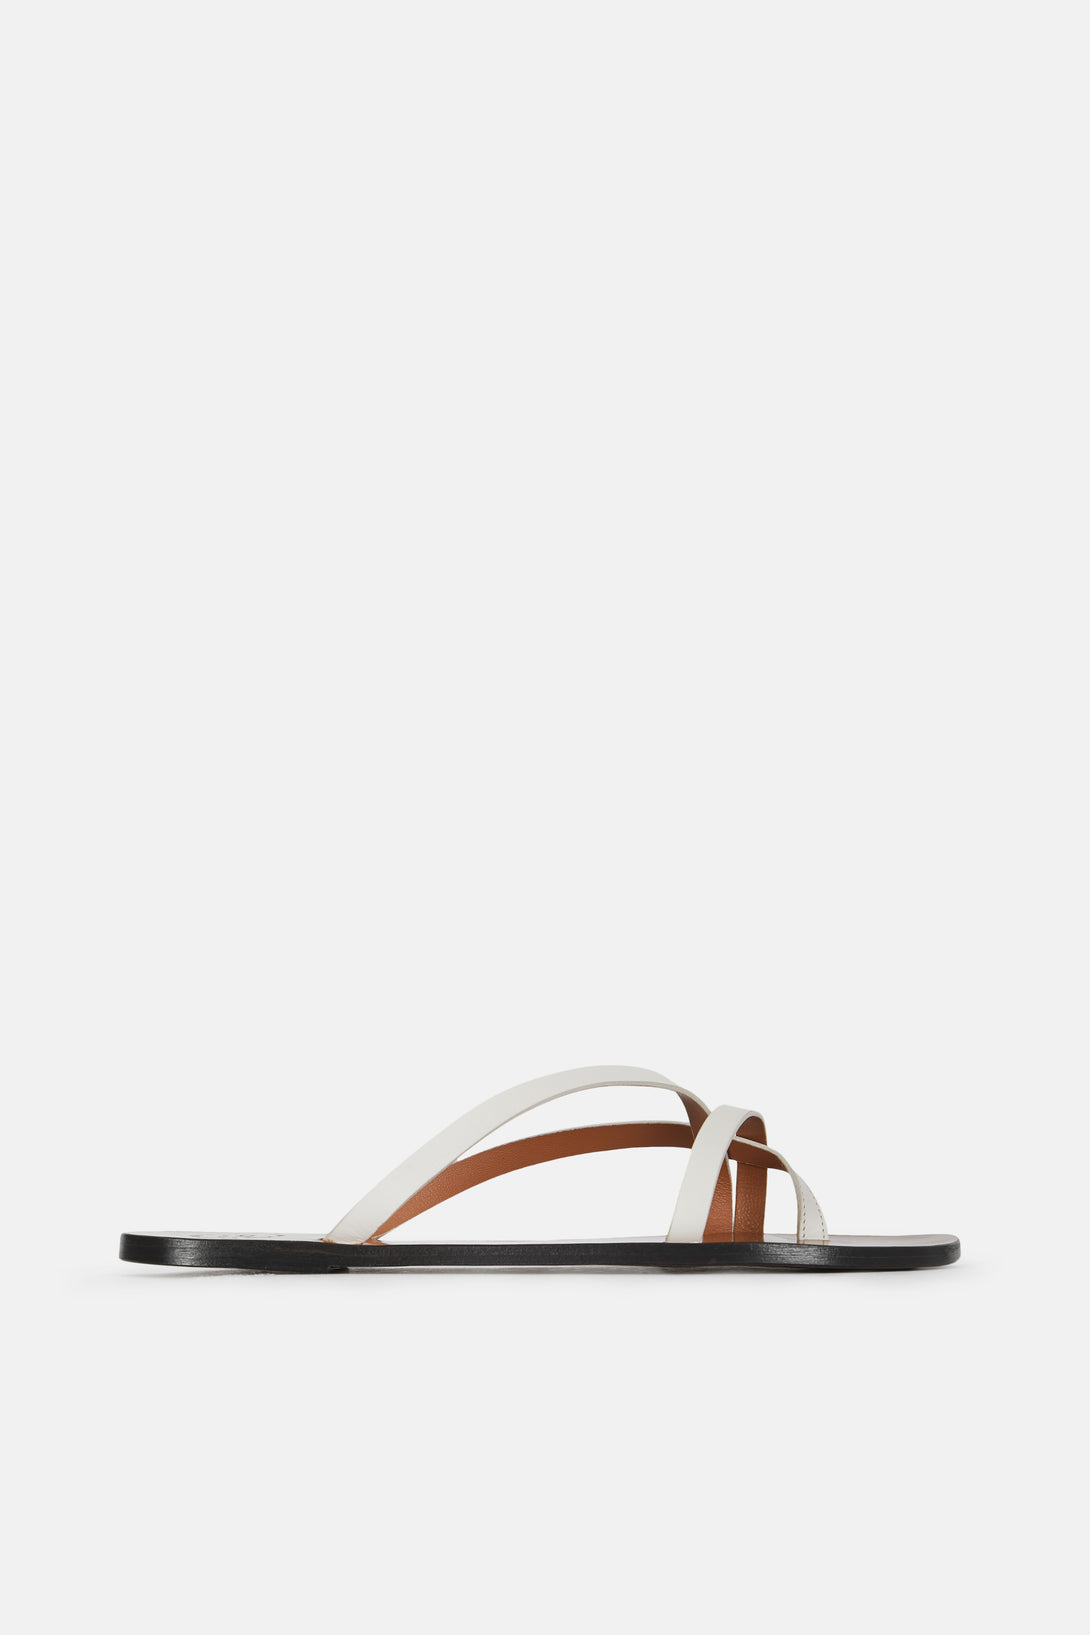 Anise Strappy Sandal - Ice White